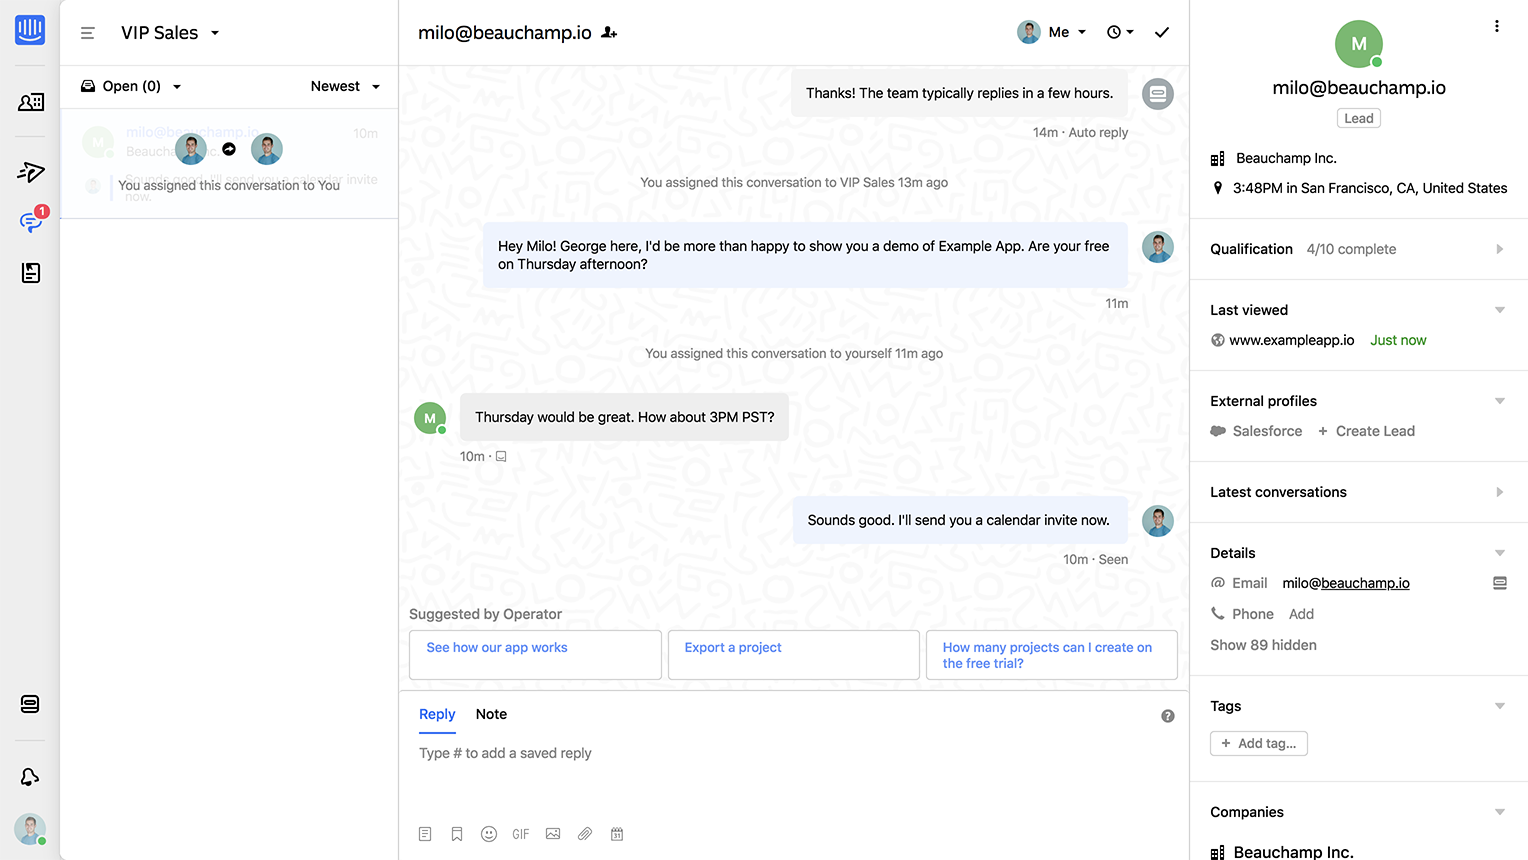 Intercom Inbox shows conversation and visitor data